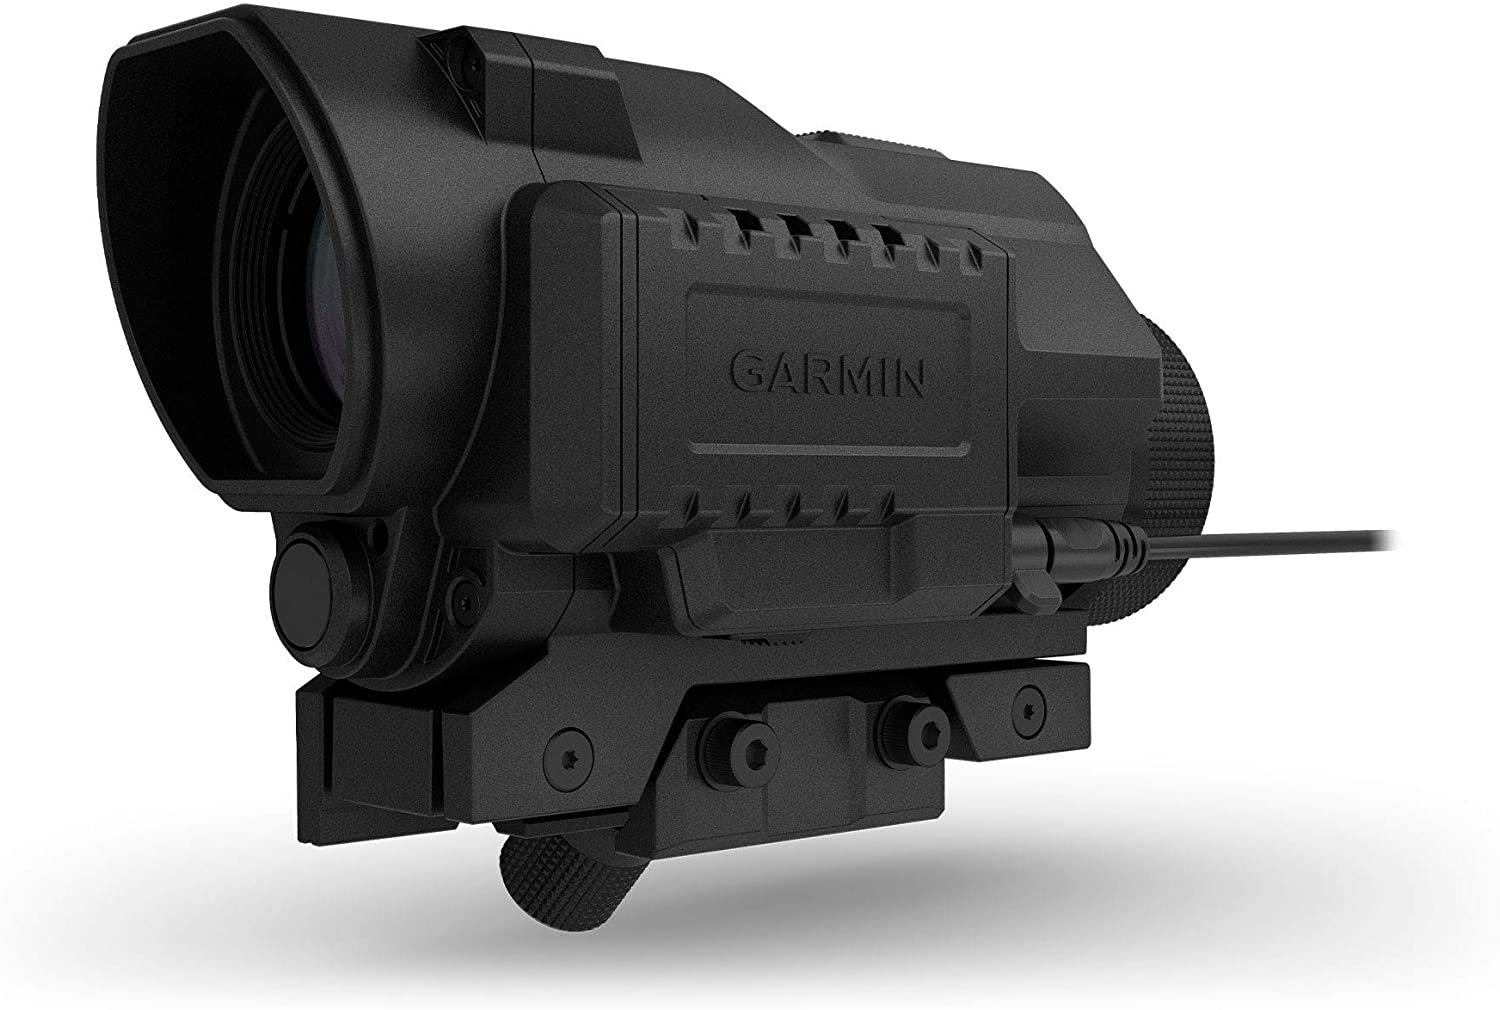 The Garmin Xero X1i is the best crossbow scope for hunting.